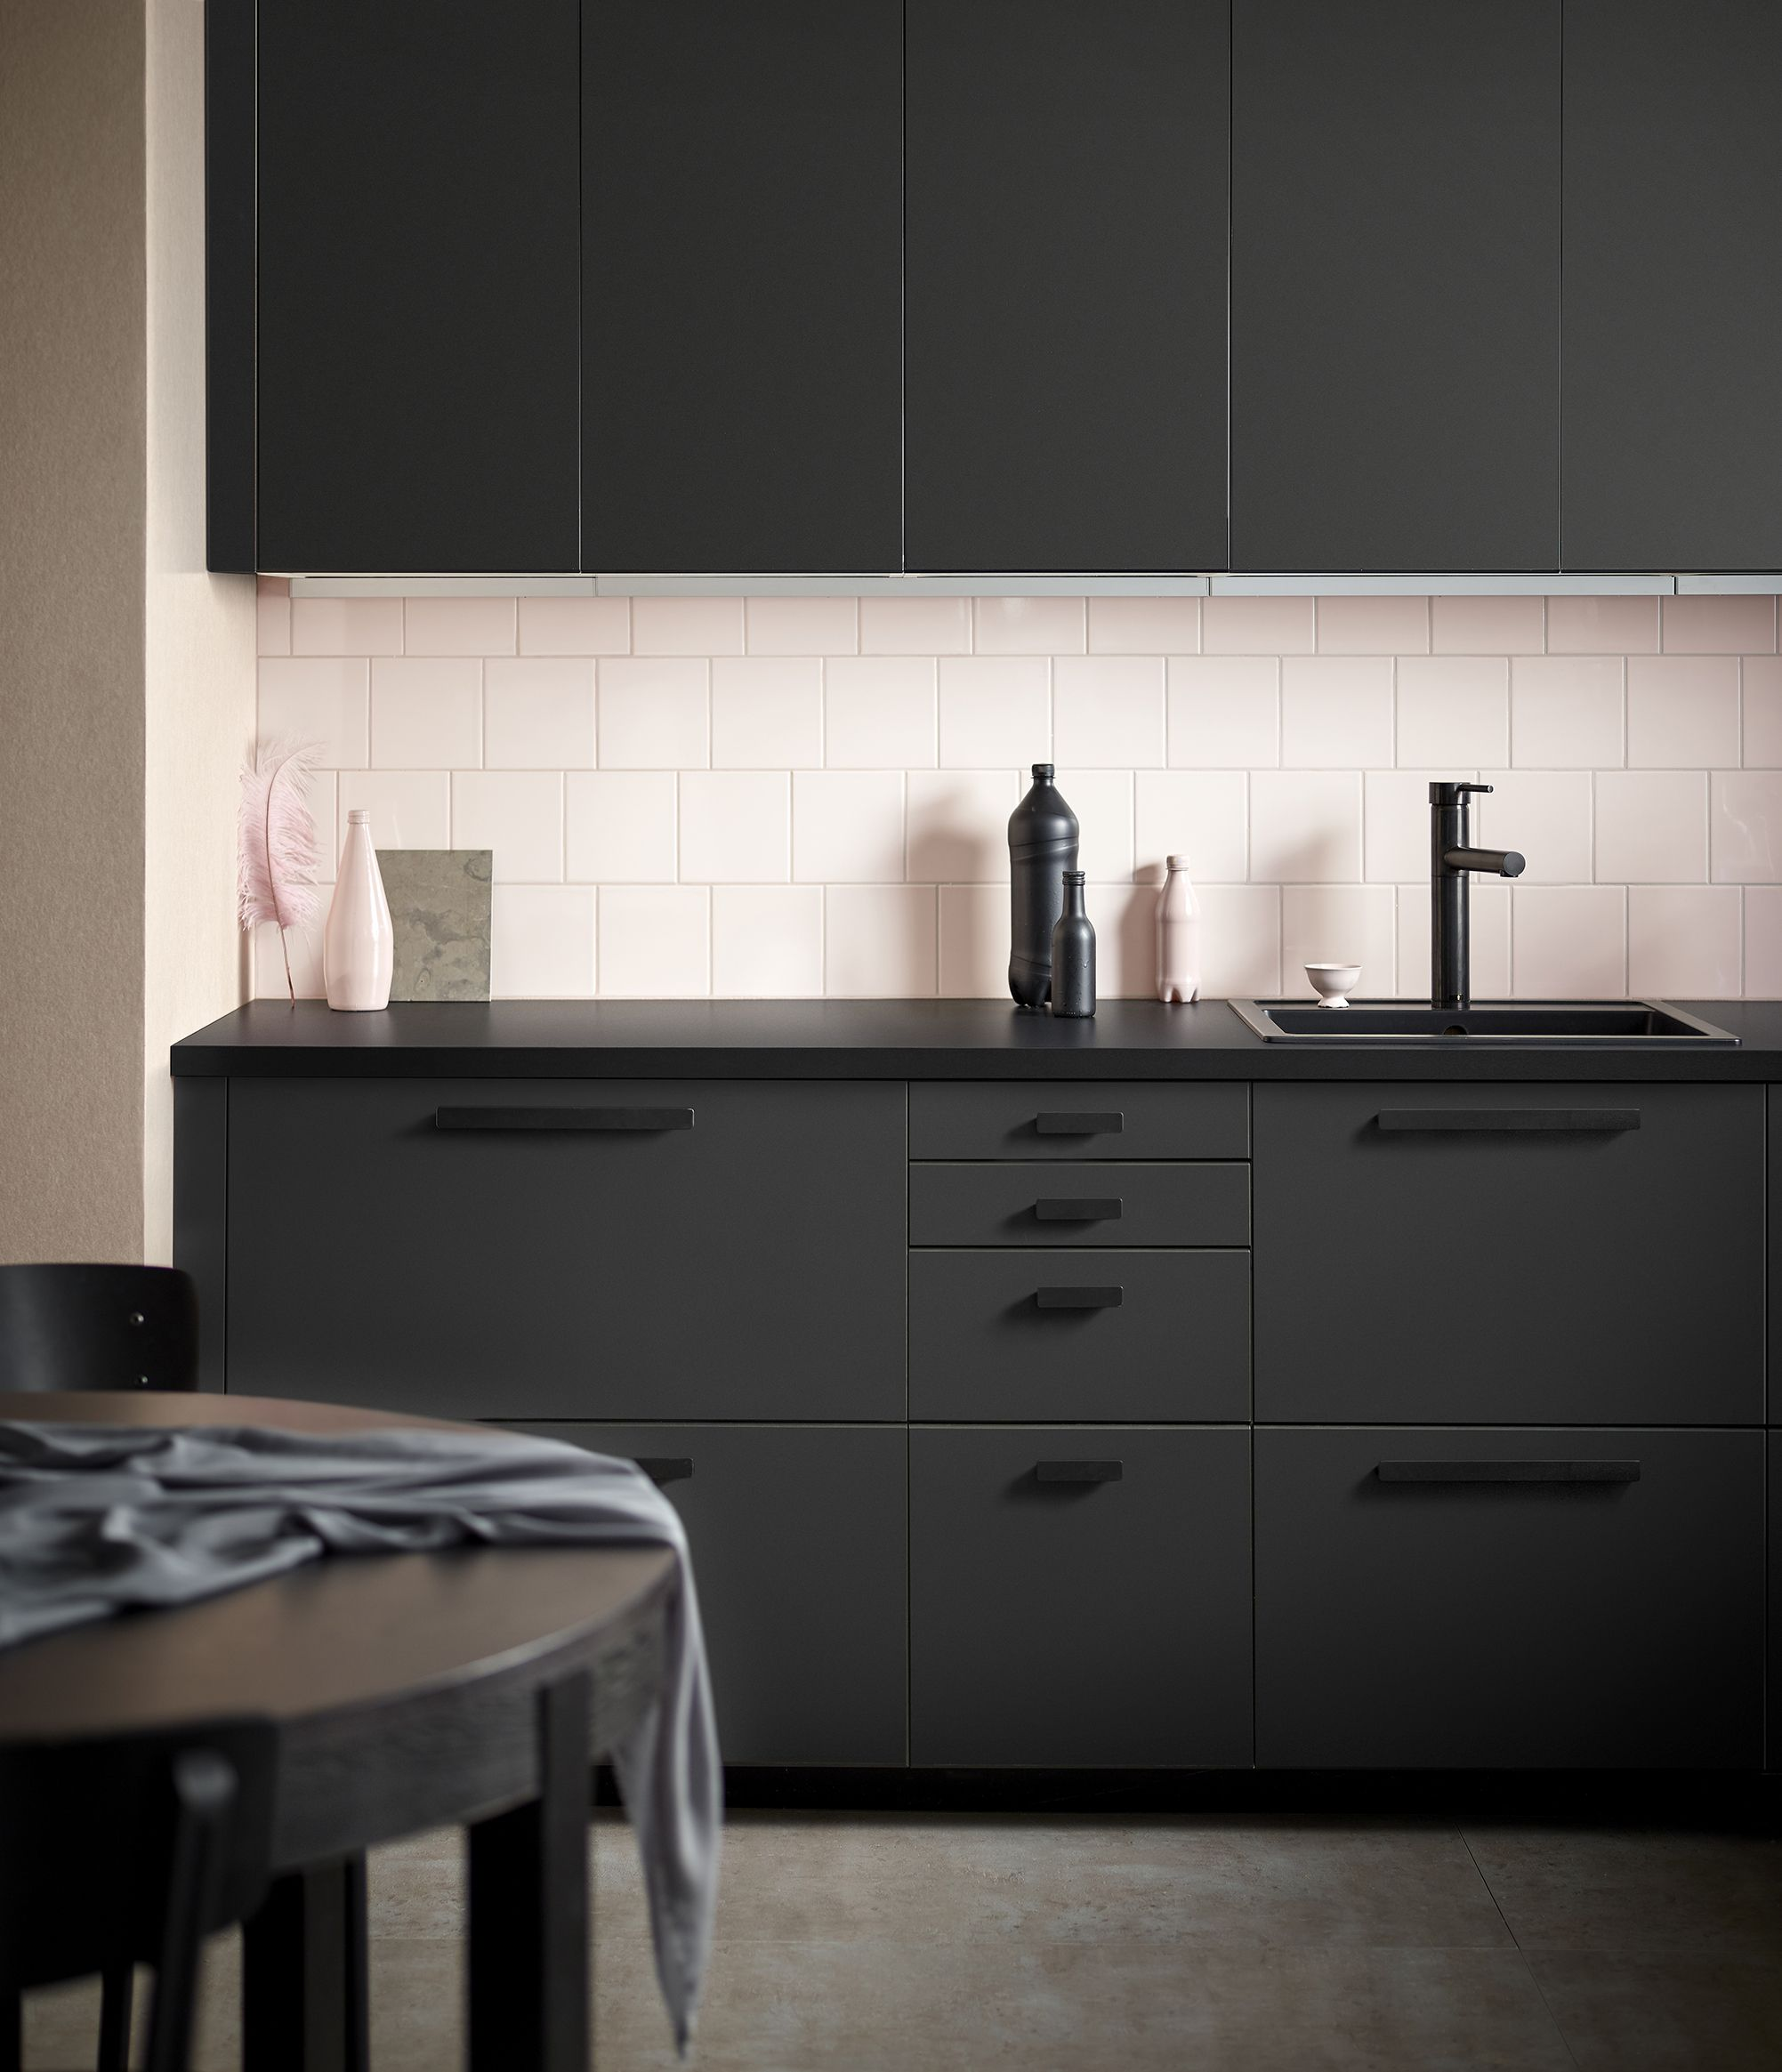 For A Truly Sustainable Kitchen Front Discover Kungsbacka Front Made From Recycled Waste Featuring A Bold Look In Anthracite Ikea Kungsback Kuchen Fronten Kuche Schwarz Und Metod Kuche